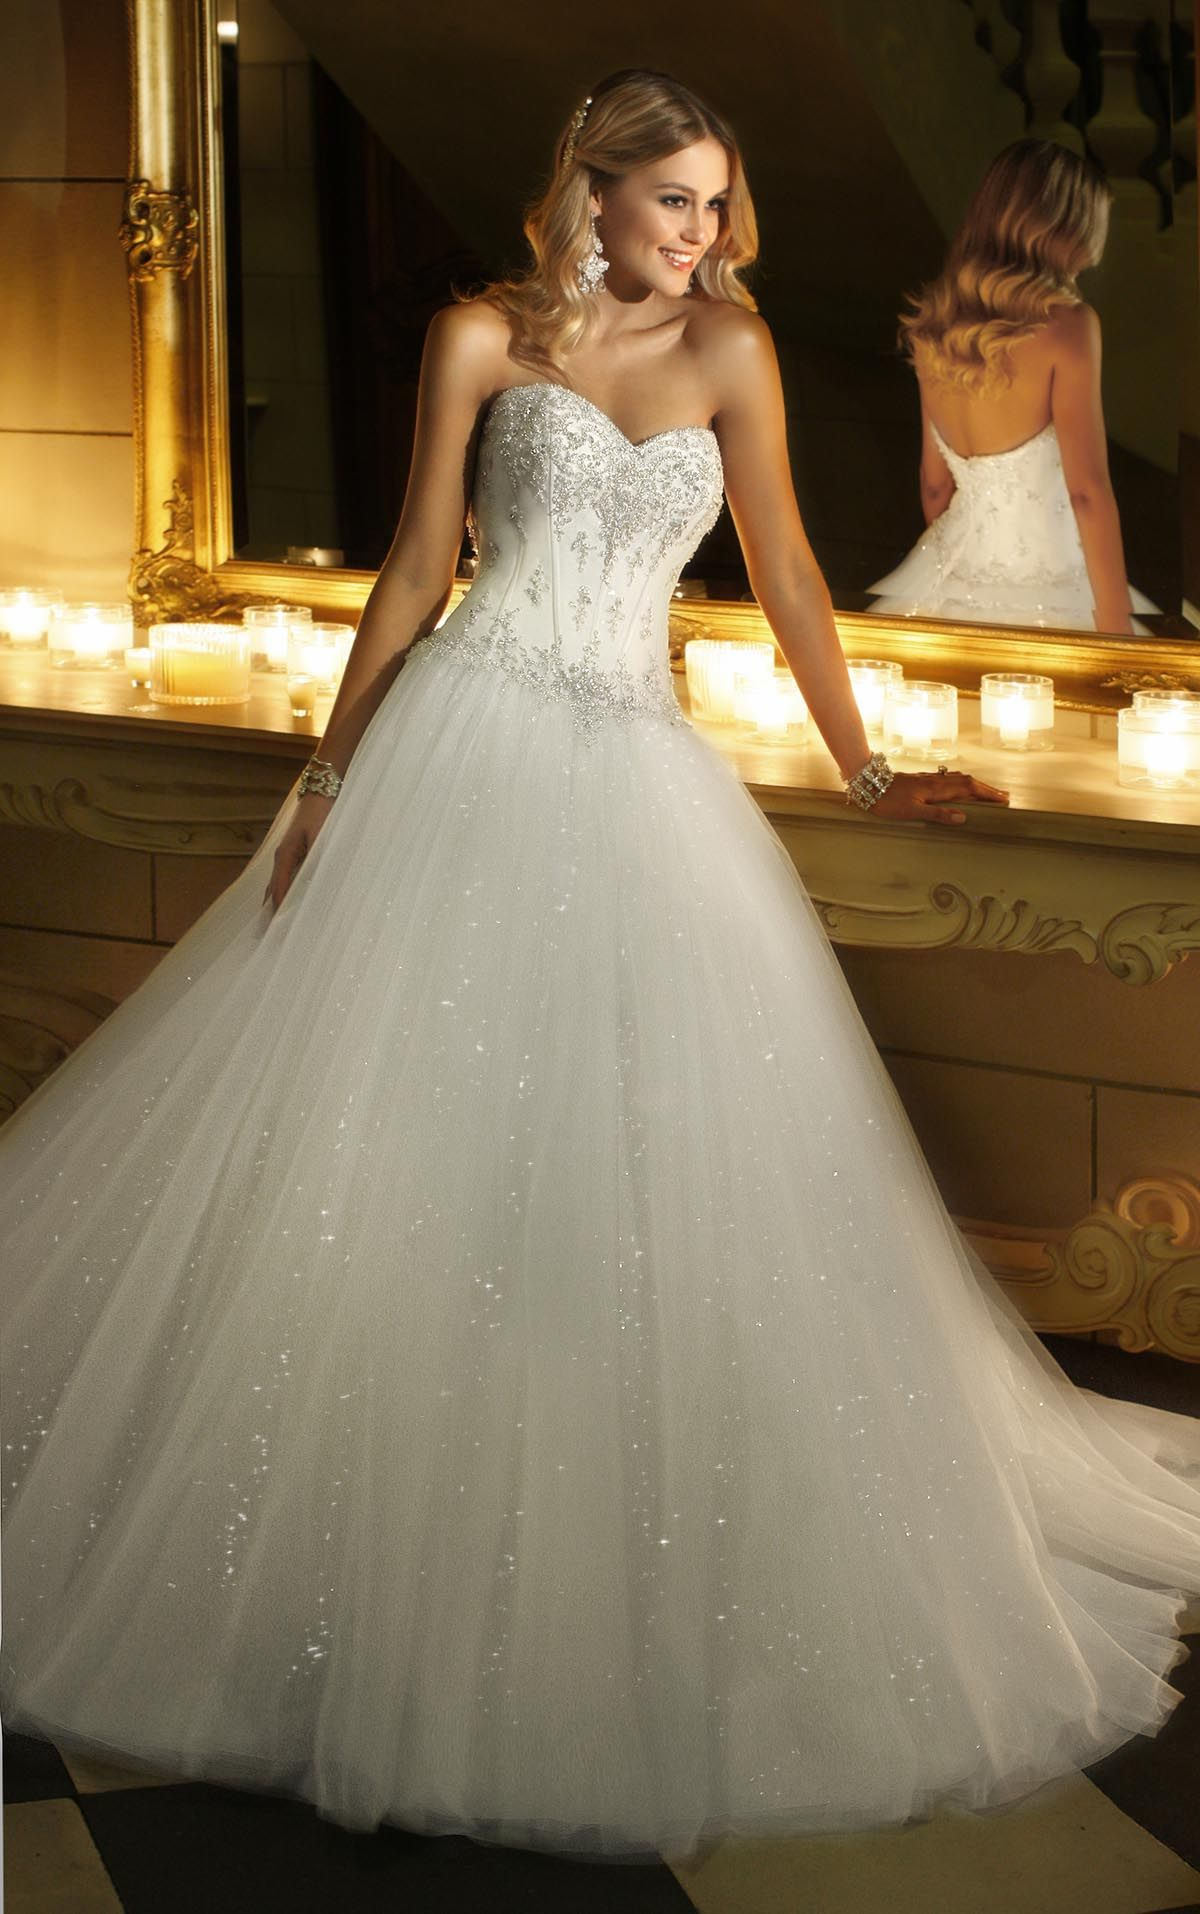 Sparkling Strapless Sweetheart Beaded Corset Lace Ball